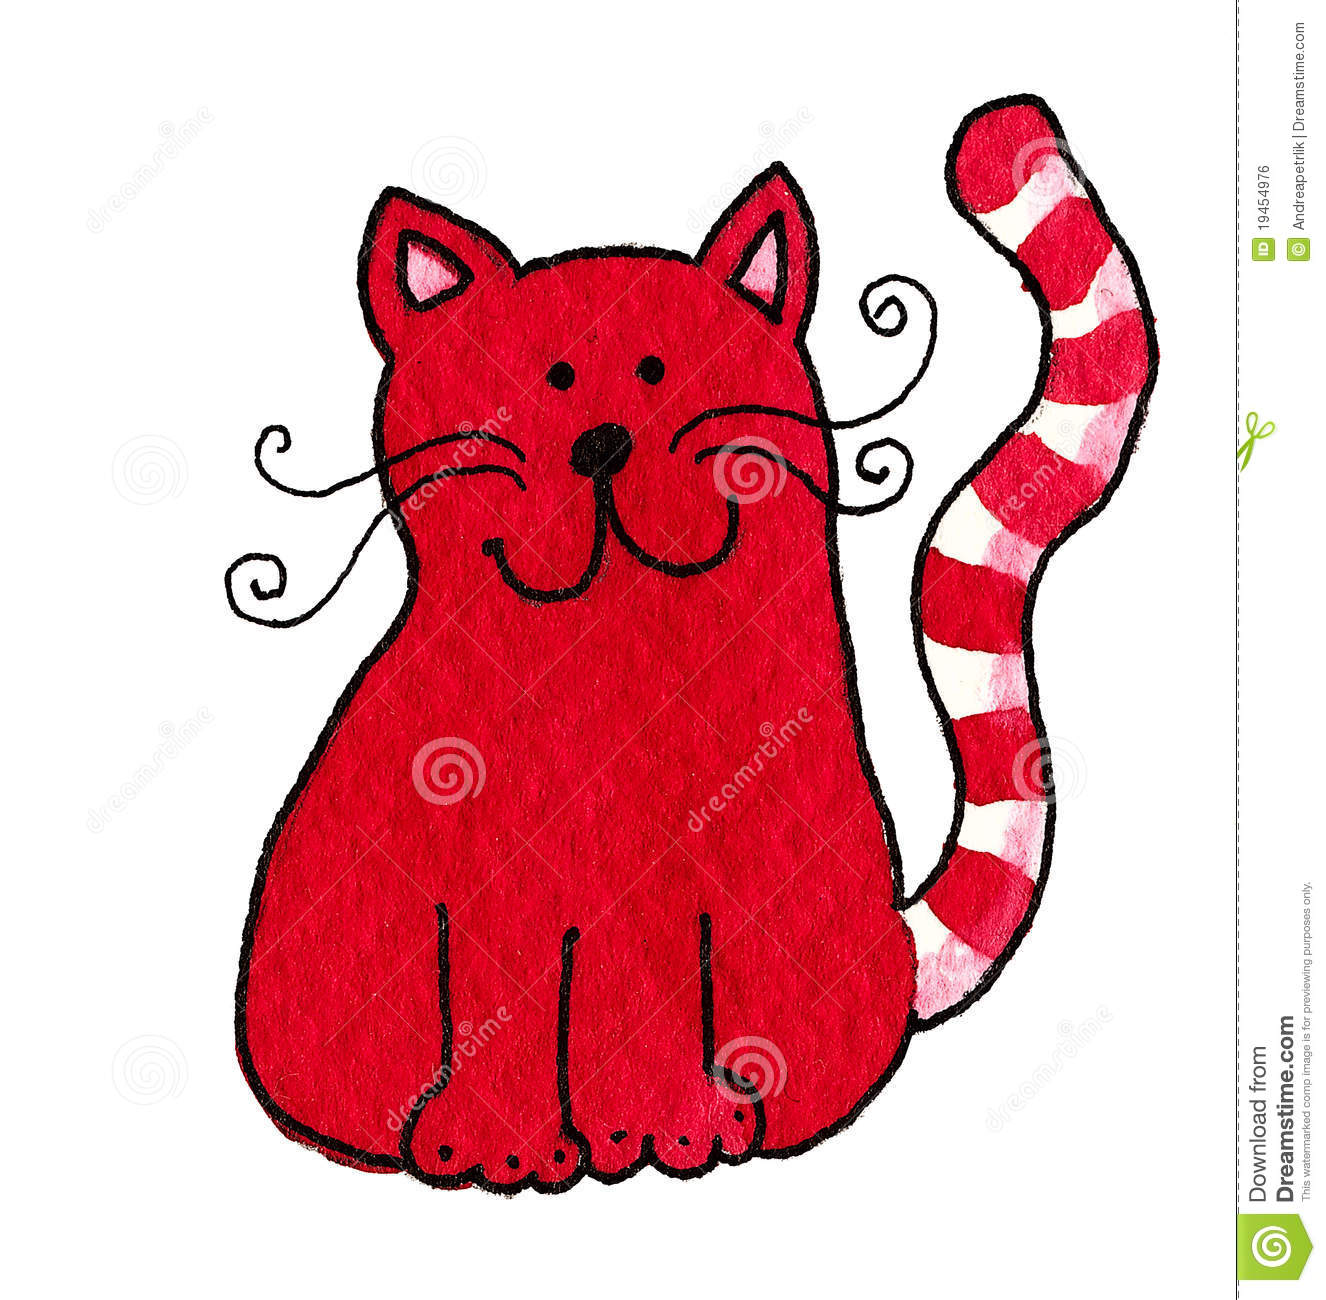 cute red cat royalty free stock image image 19454976 clipart animation clipart animation for yoga pose